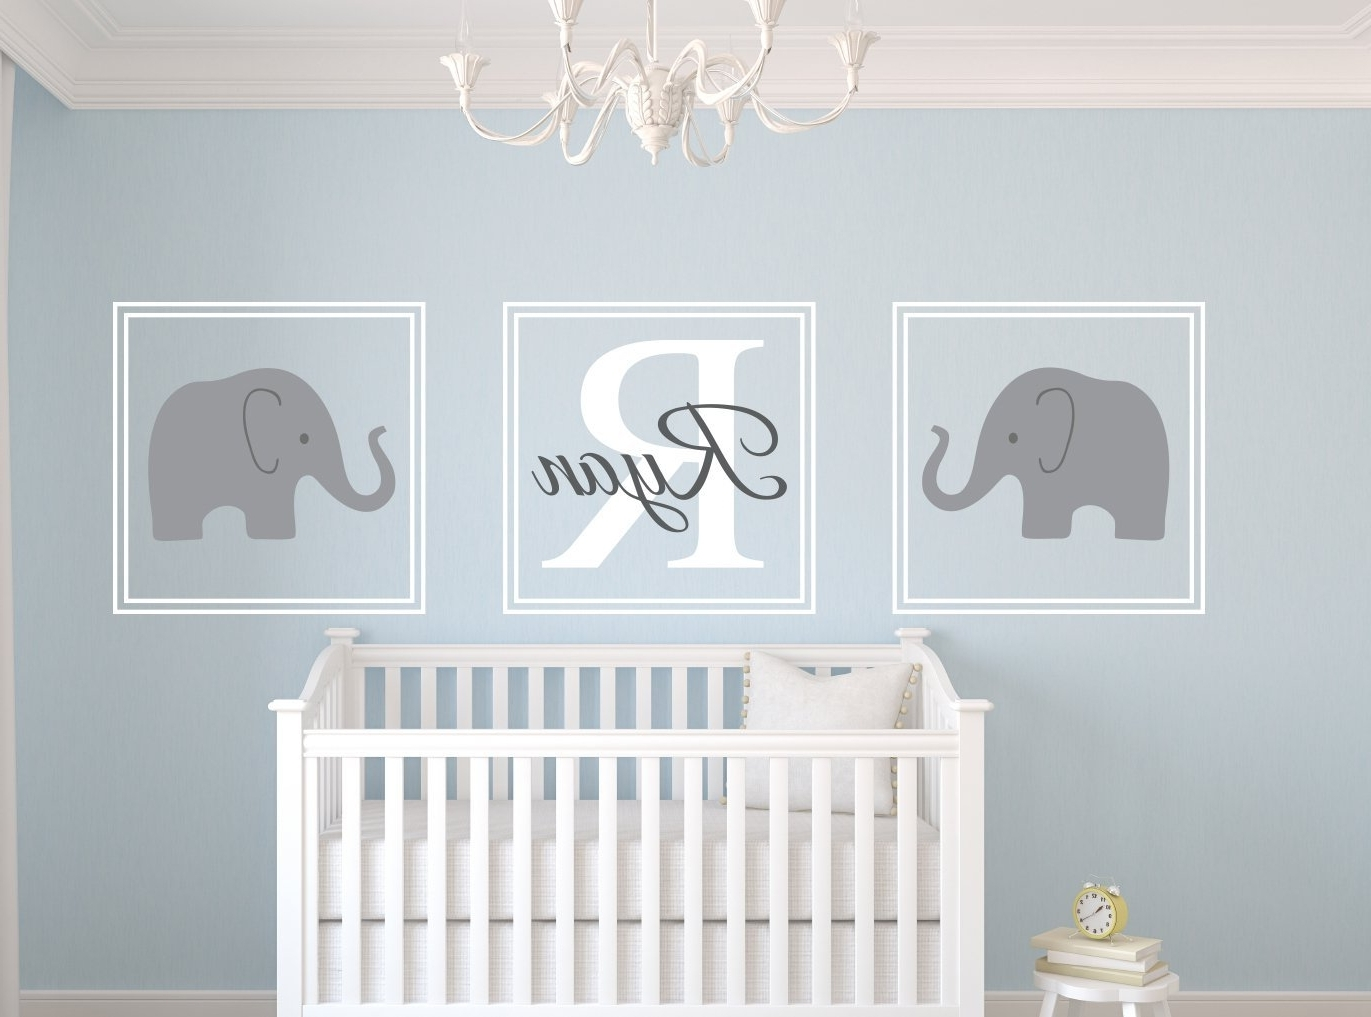 Amazon: Elephant Name Wall Decal Set Nursery Wall Decor: Home For Best And Newest Elephant Wall Art For Nursery (View 3 of 15)